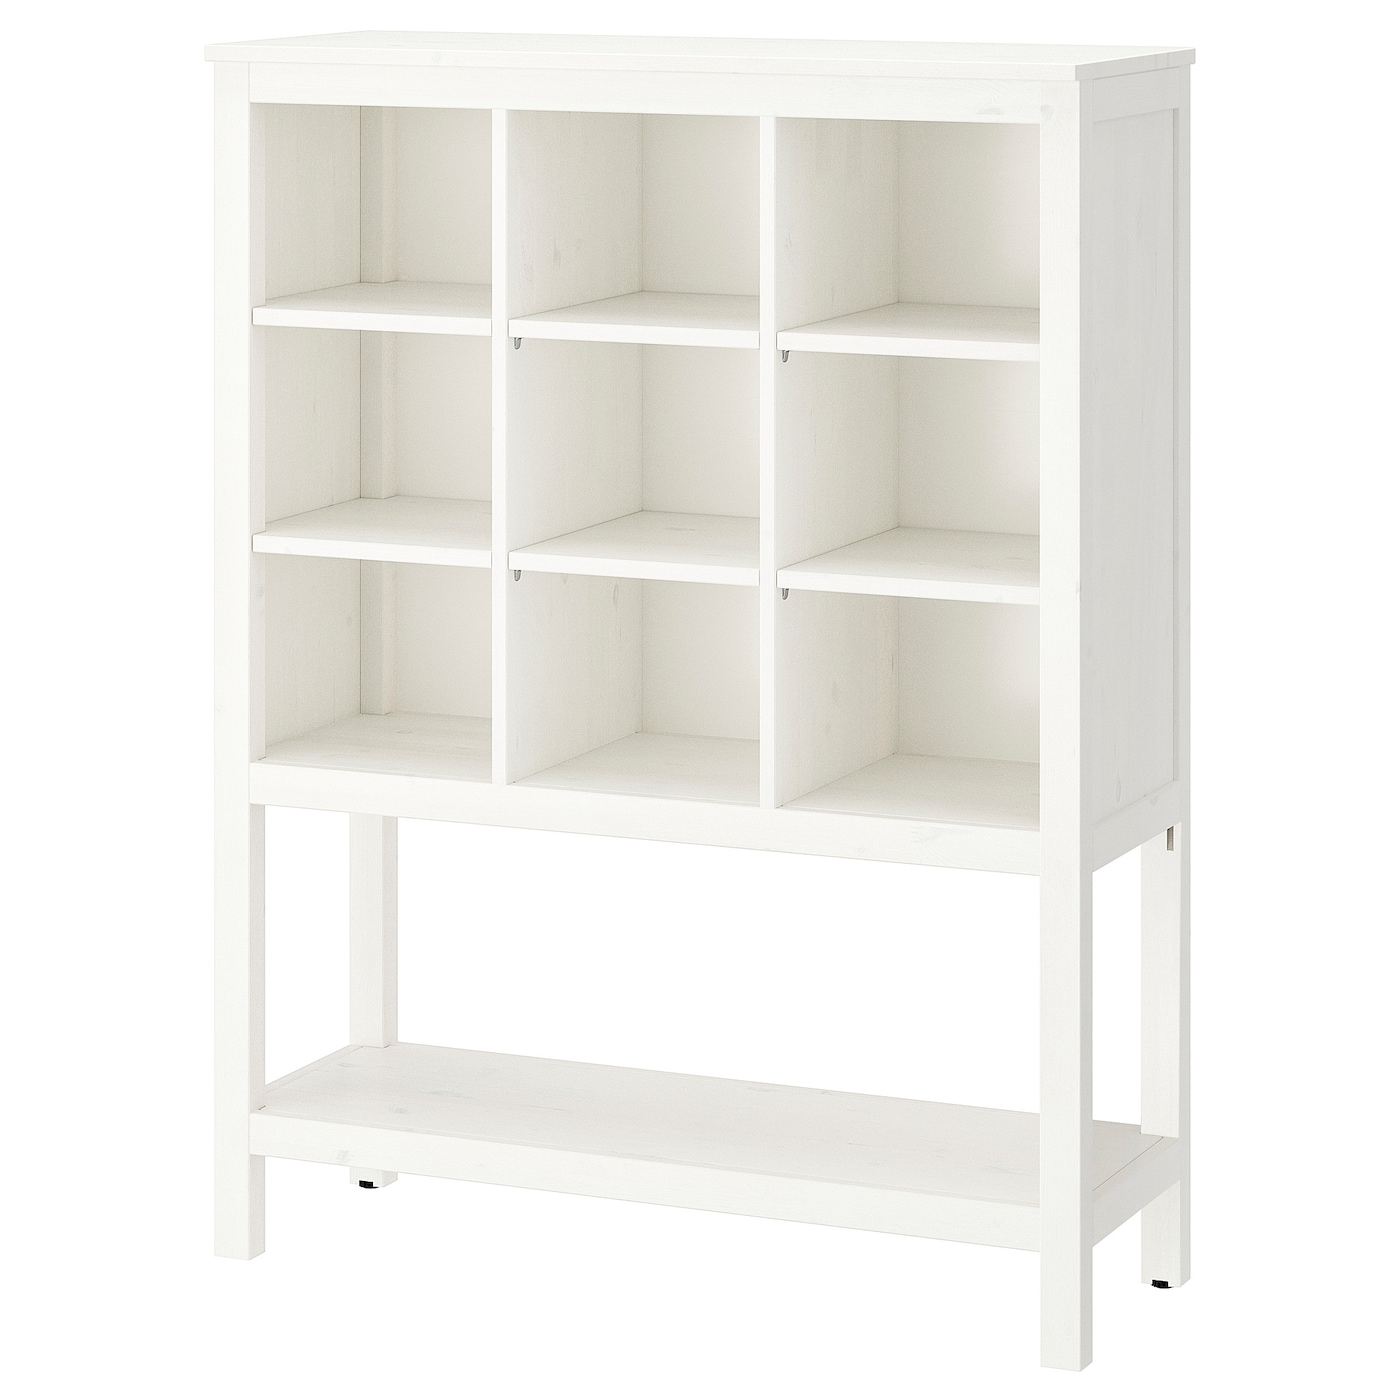 Hemnes storage unit white stained 99 x 130 x 37 cm ikea - Mueble tv hemnes ...